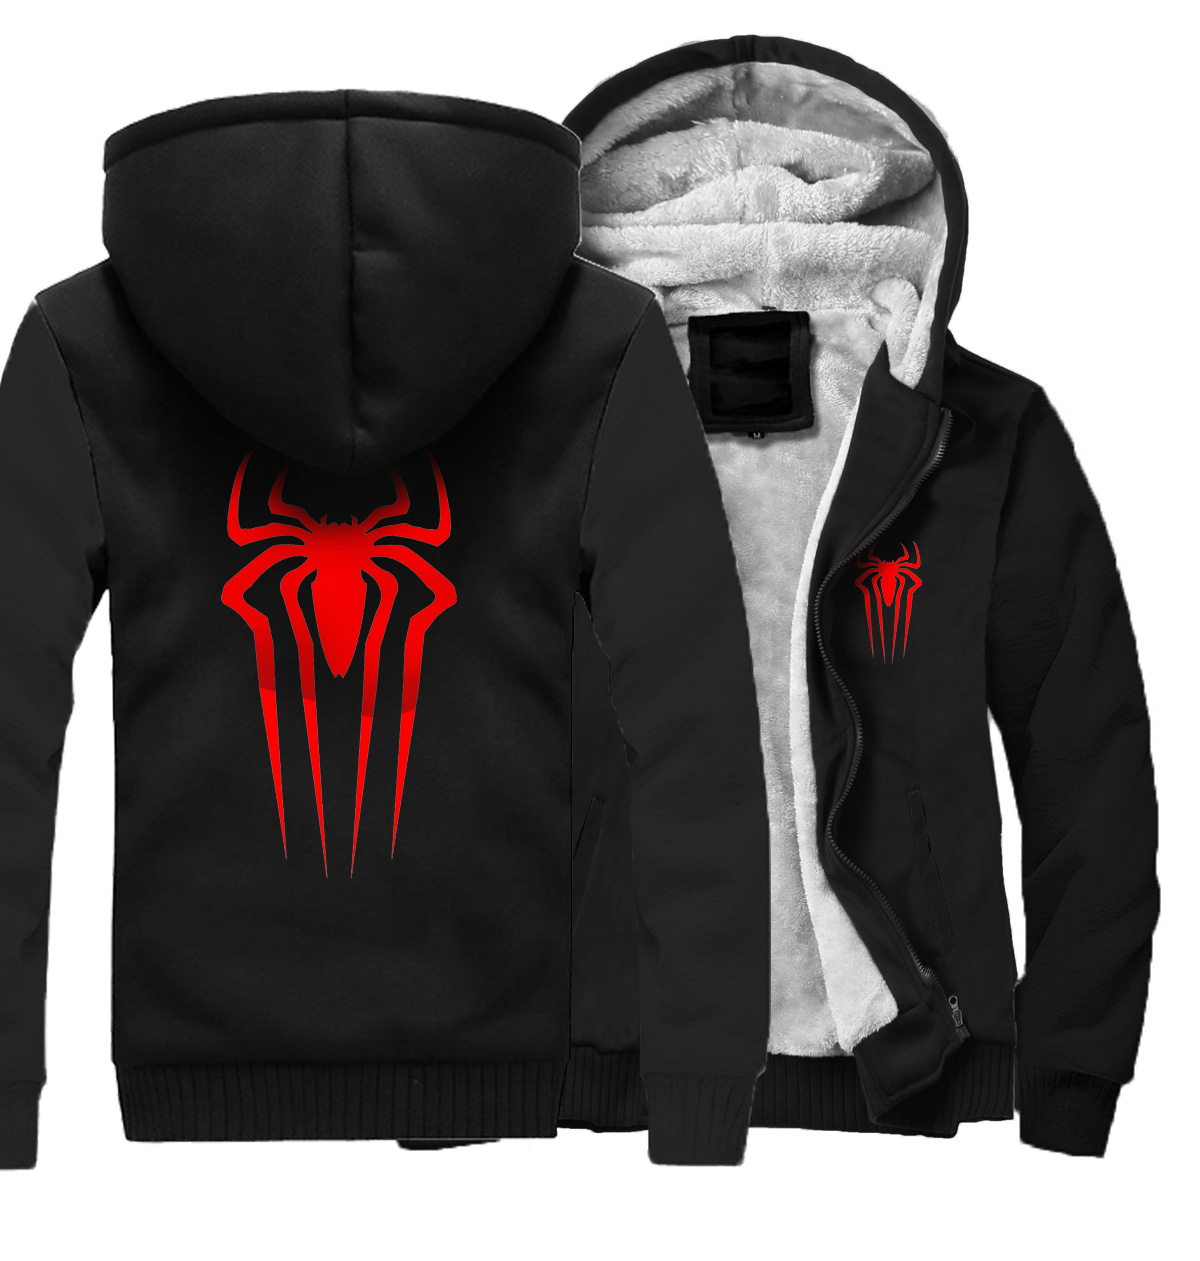 2018 Autumn Winter Thick Sweatshirts For Men Hip Hop Streetwear Hooded Hoodie SpiderMan Harajuku Men's Hoodies Punk Jacket Hoody